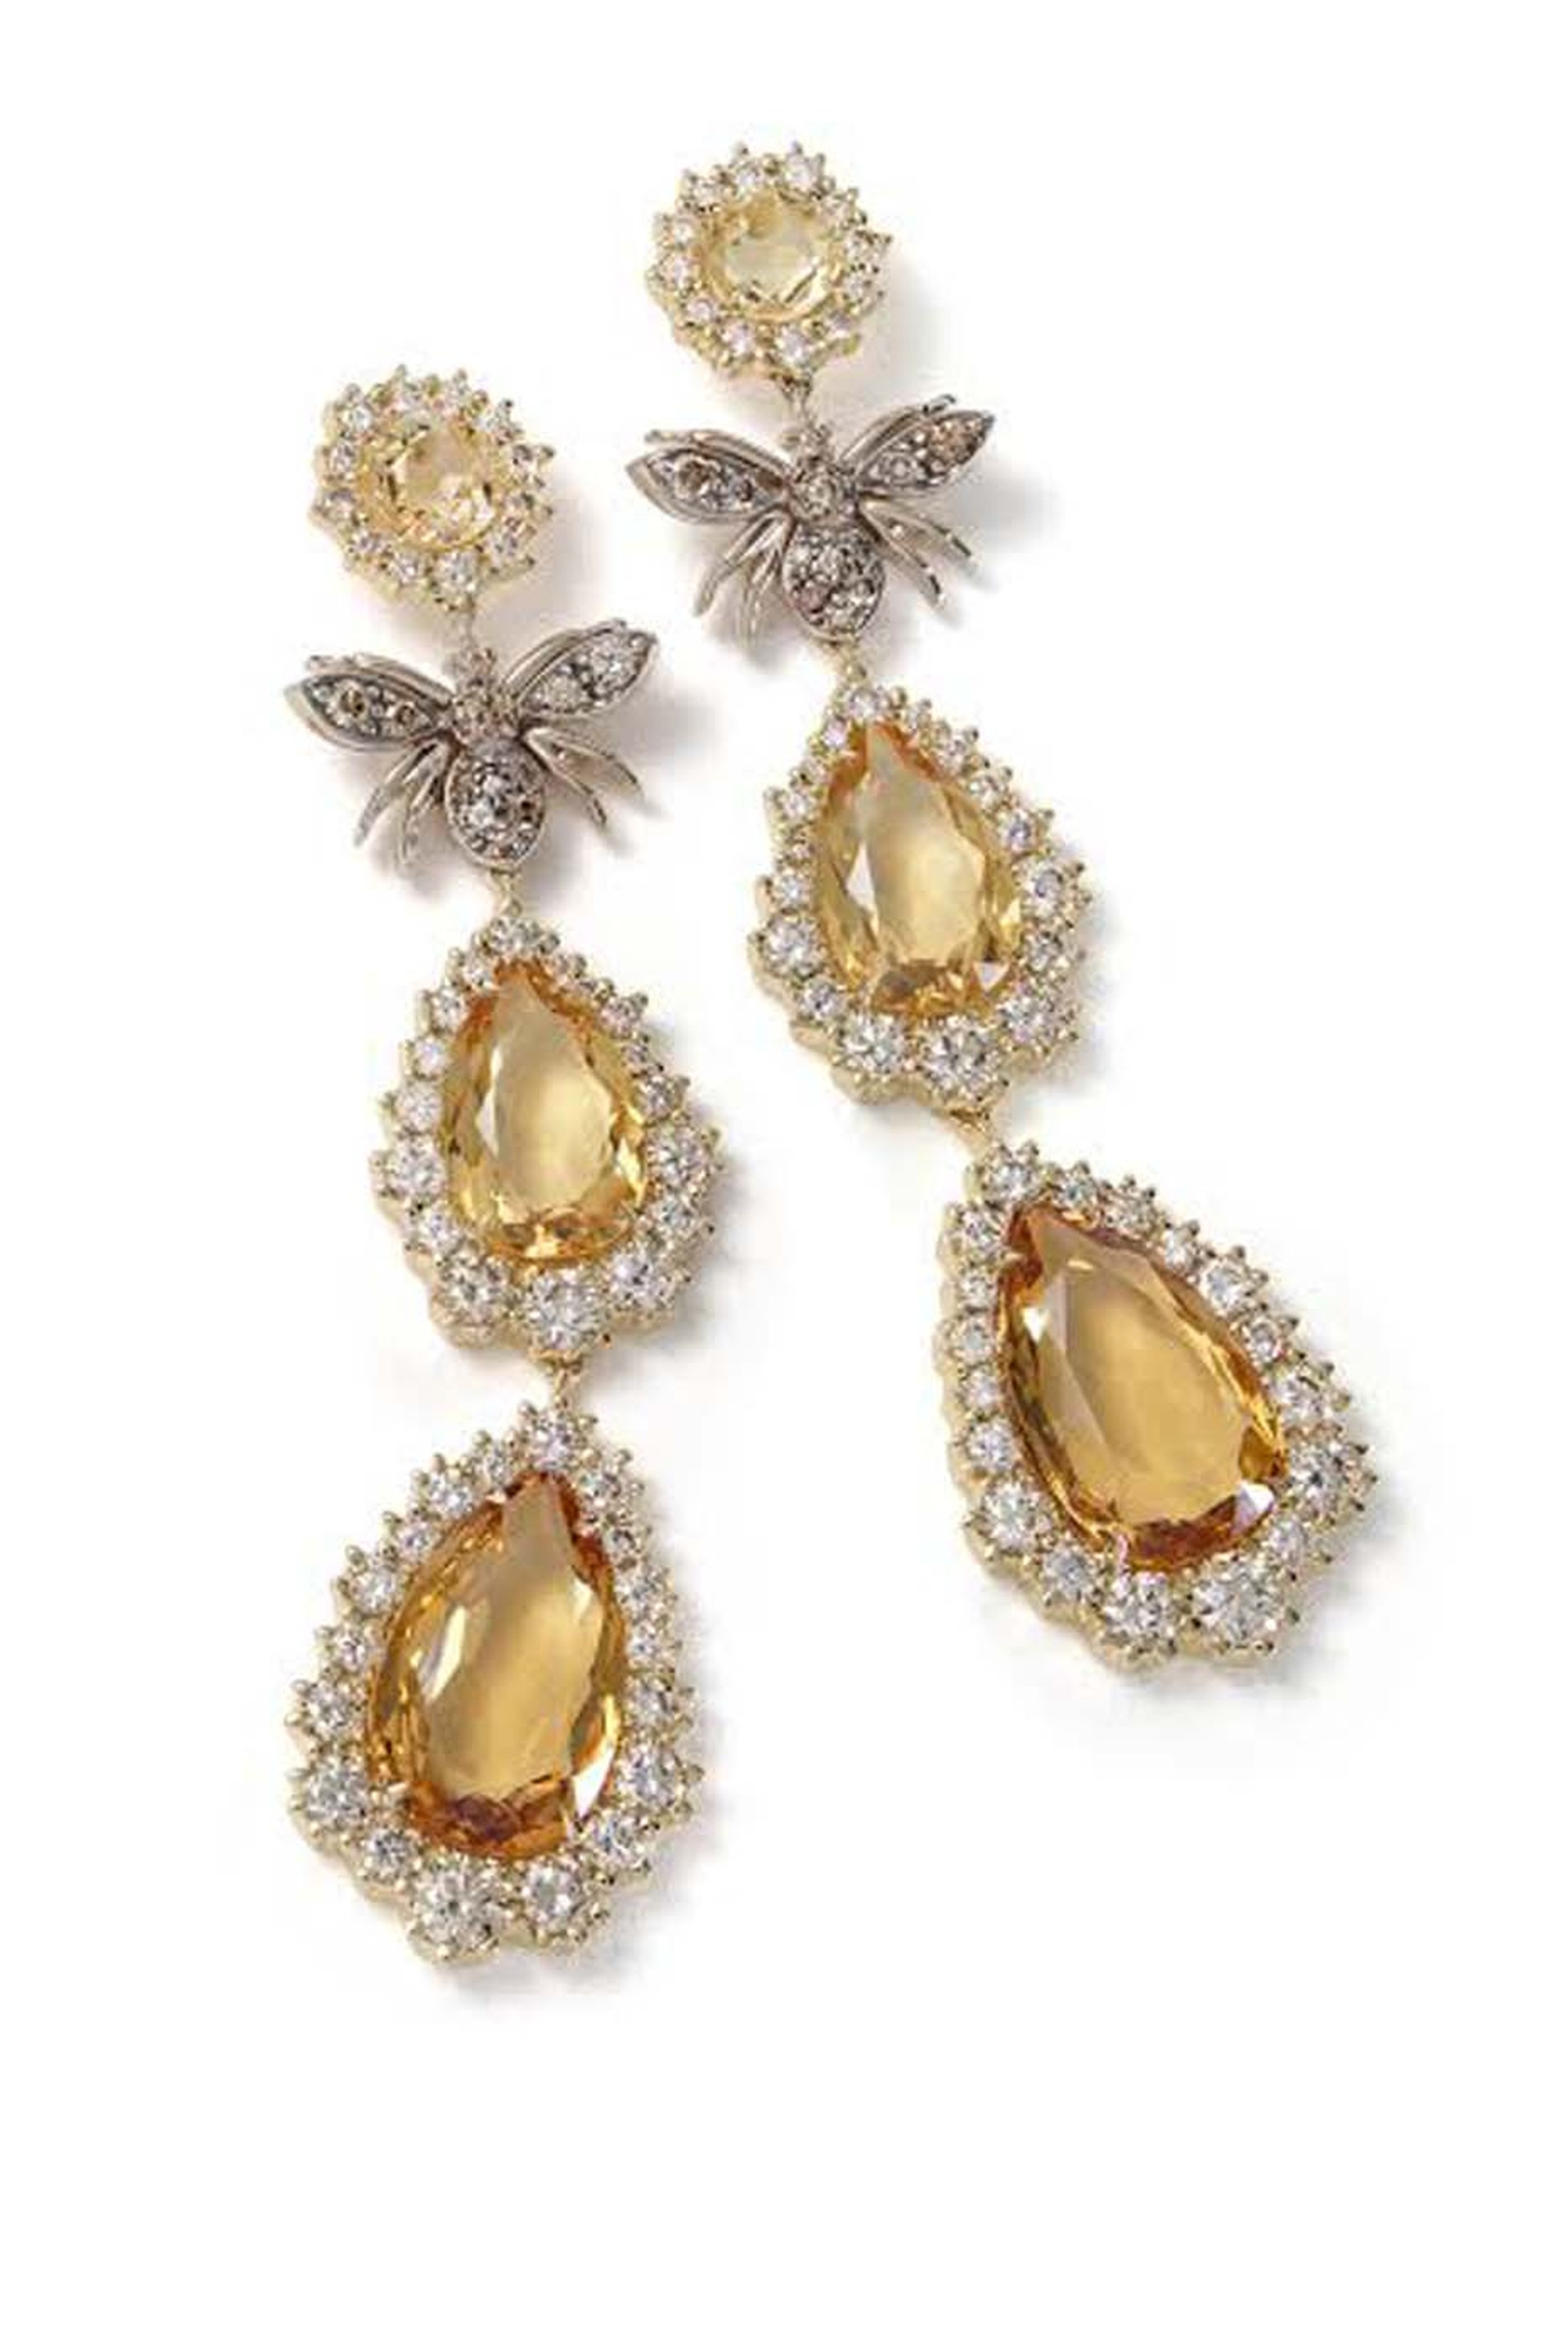 This striking pair of H.Stern drop earrings in yellow gold with cognac diamonds and citrine, are topped by a bee crafted from Noble gold.